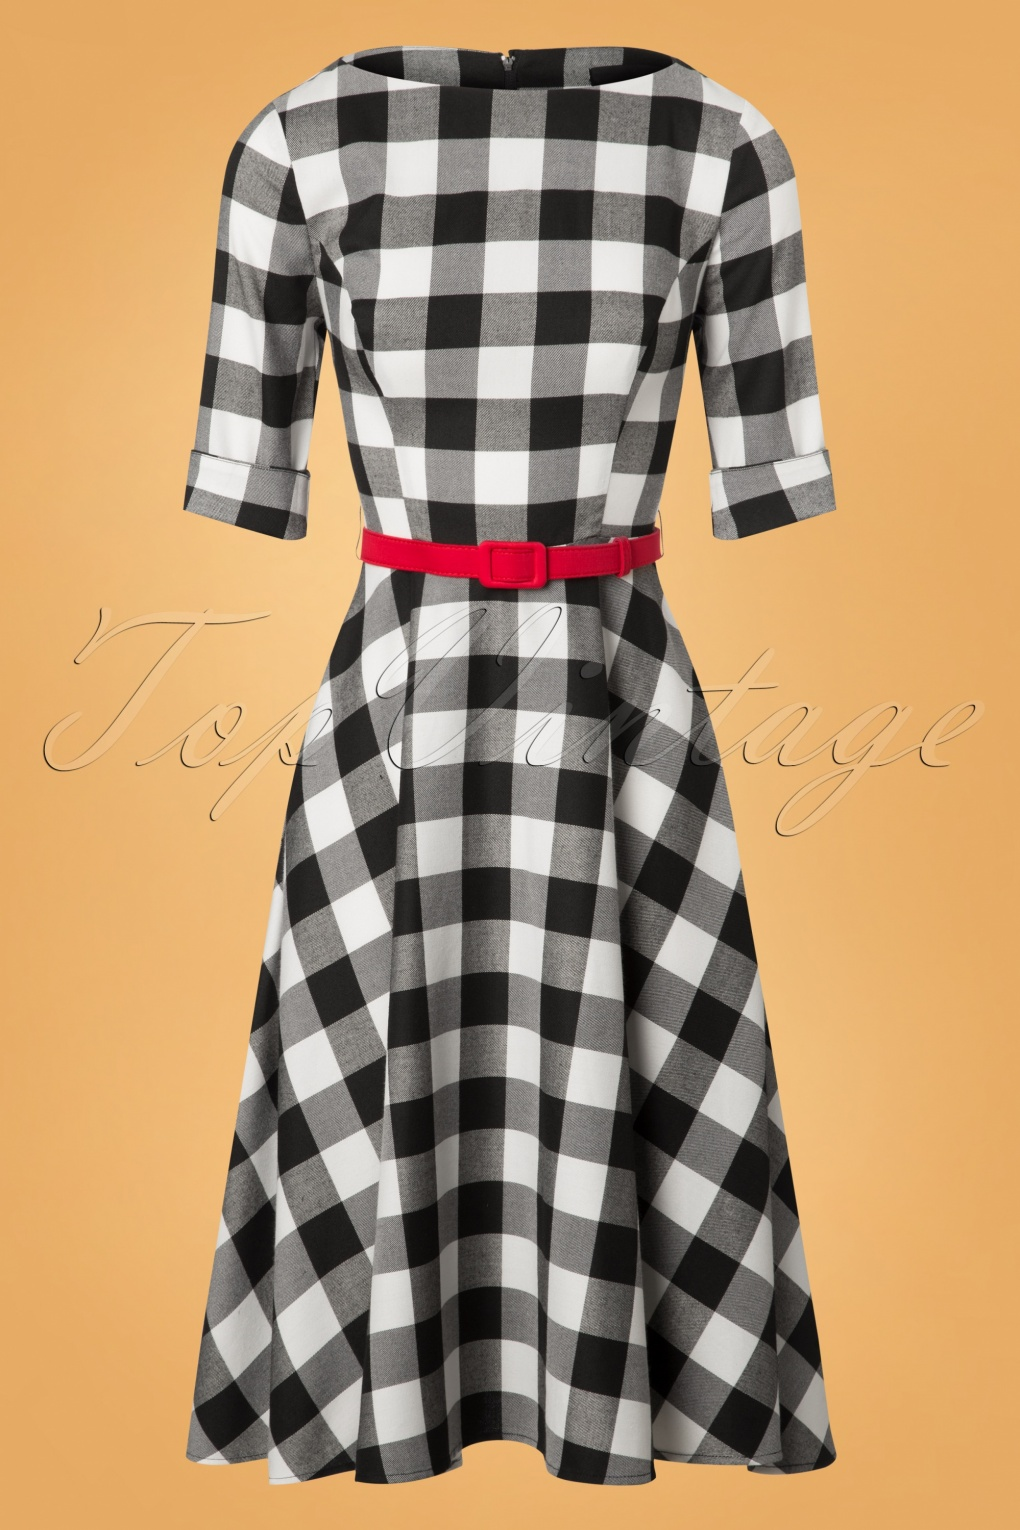 50 Vintage Inspired Clothing Stores 50s Suzanne Gingham Swing Dress in Black and White £68.35 AT vintagedancer.com